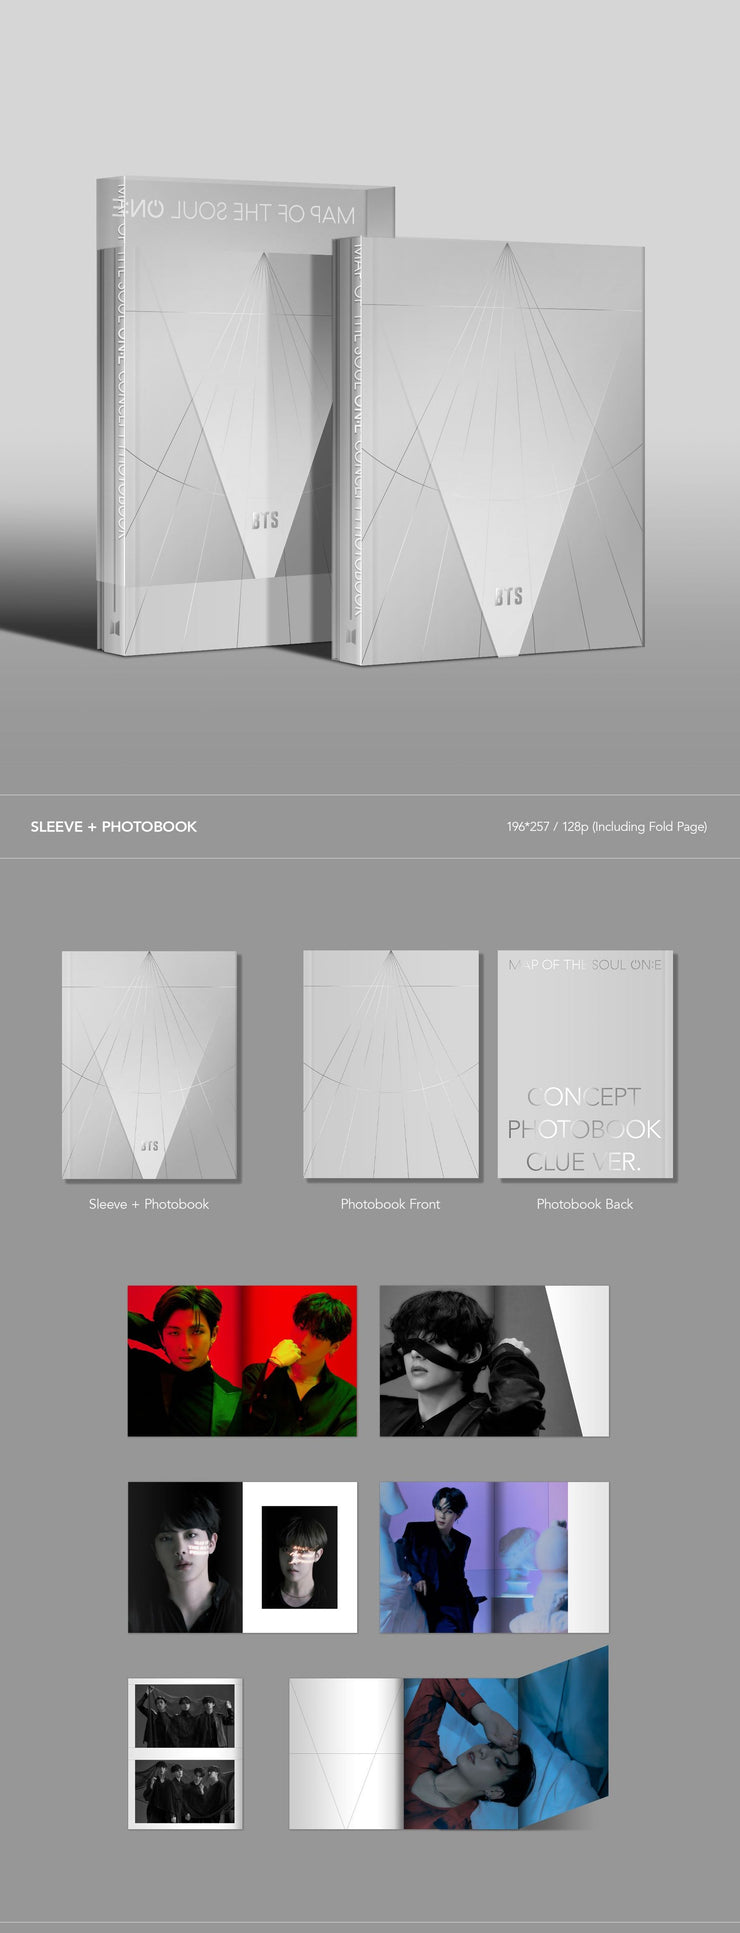 MOTS ON:E CONCEPT PHOTOBOOK - CLUE VER.